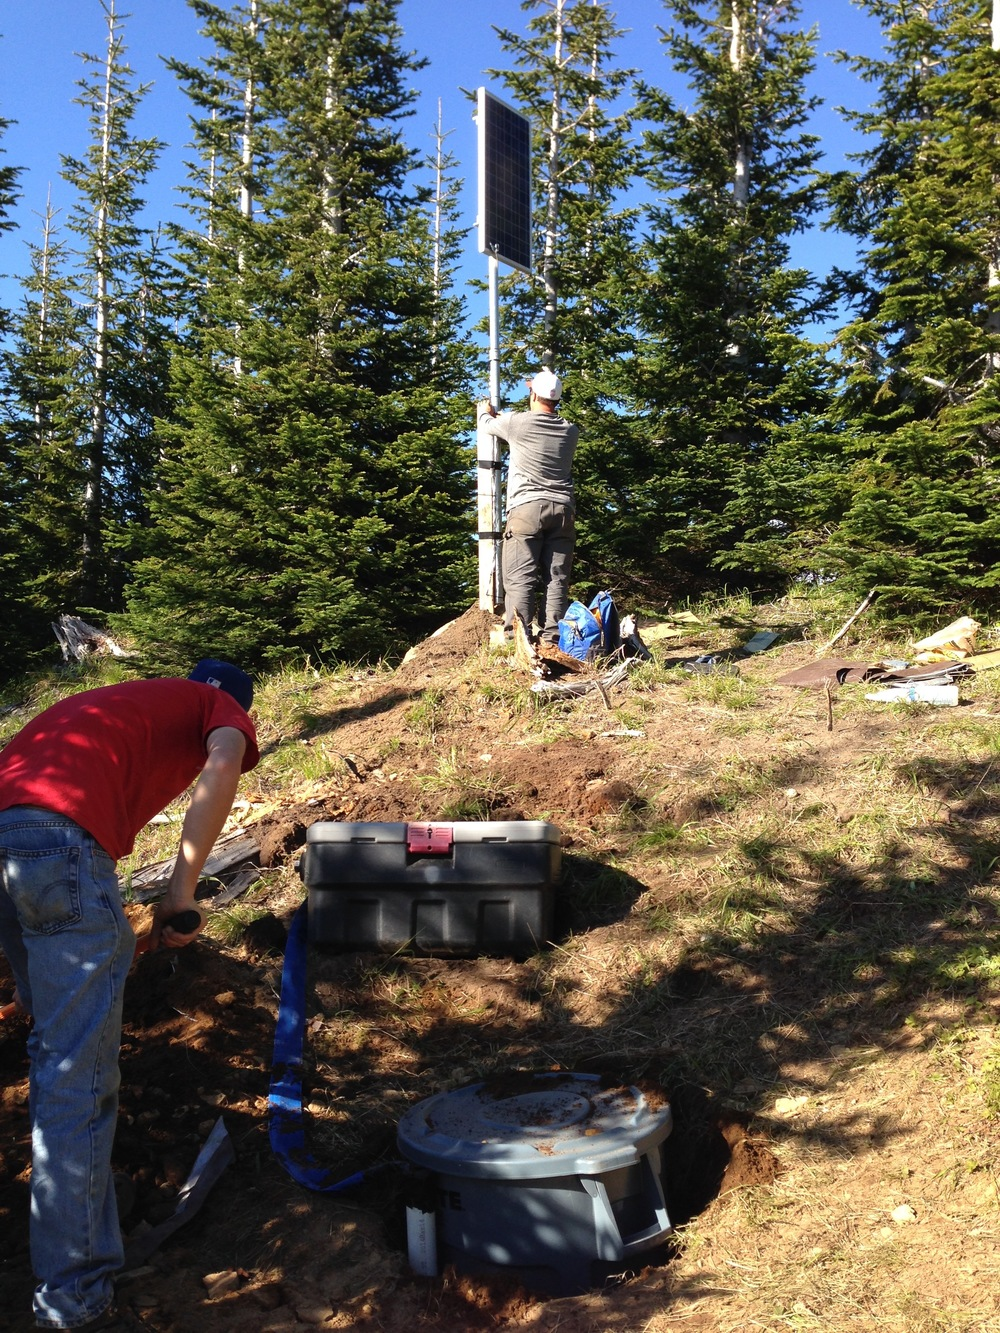 Installing a station near Mt. St. Helens, WA, in 2014. In the background Mark is securing the solar panel, while in the foreground Dylan is filling back in the hole with the sensor (attached via blue cables to the power/digitizer package in the middle).